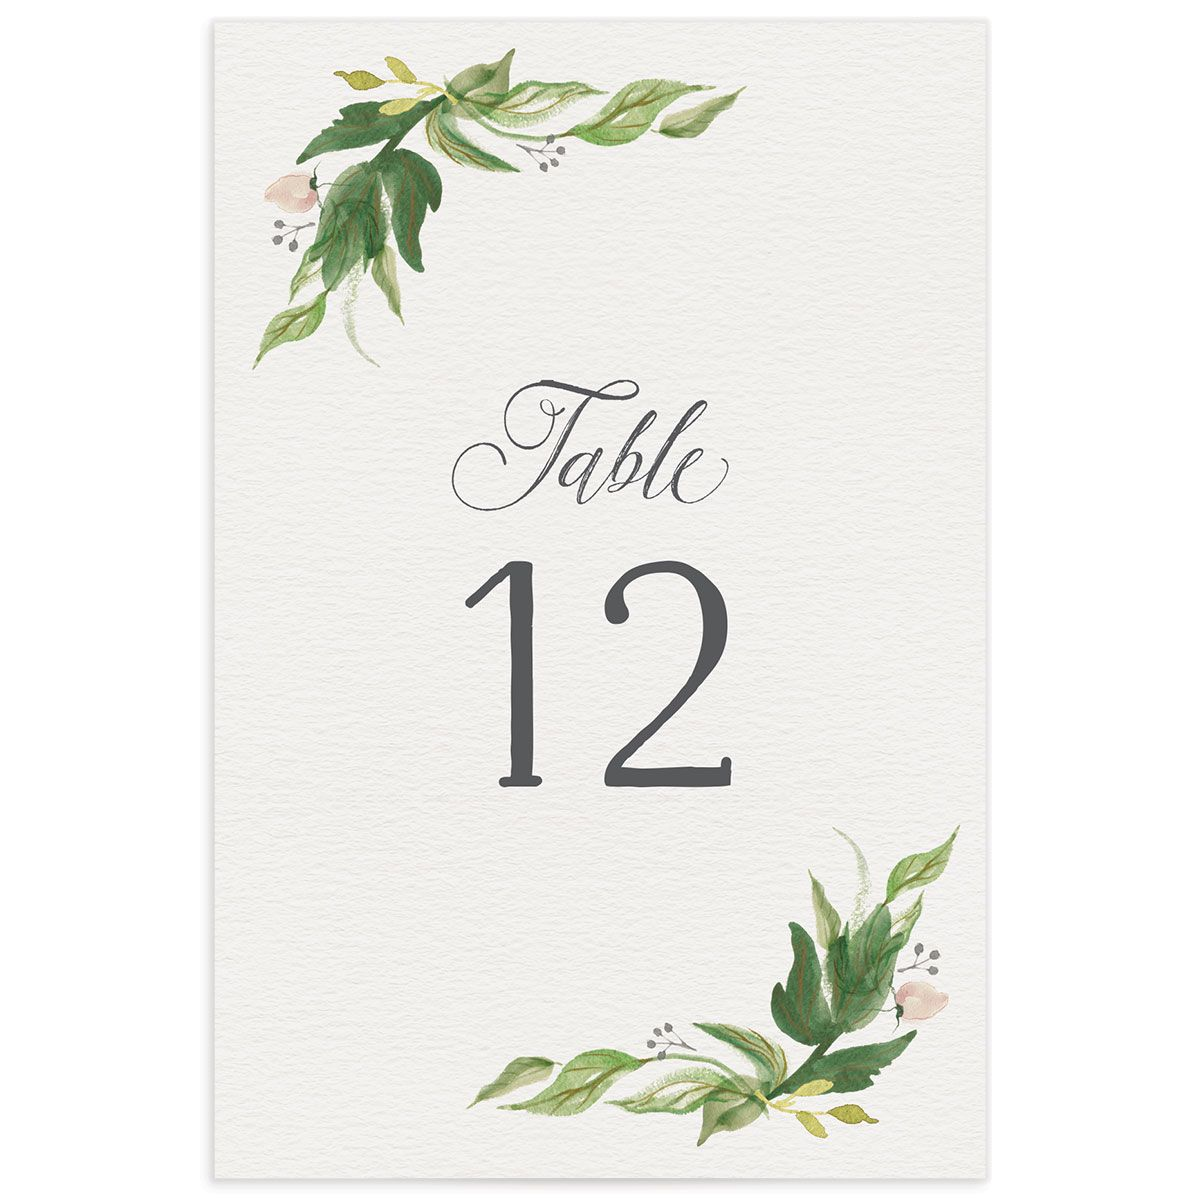 leafy wreath table numbers in green